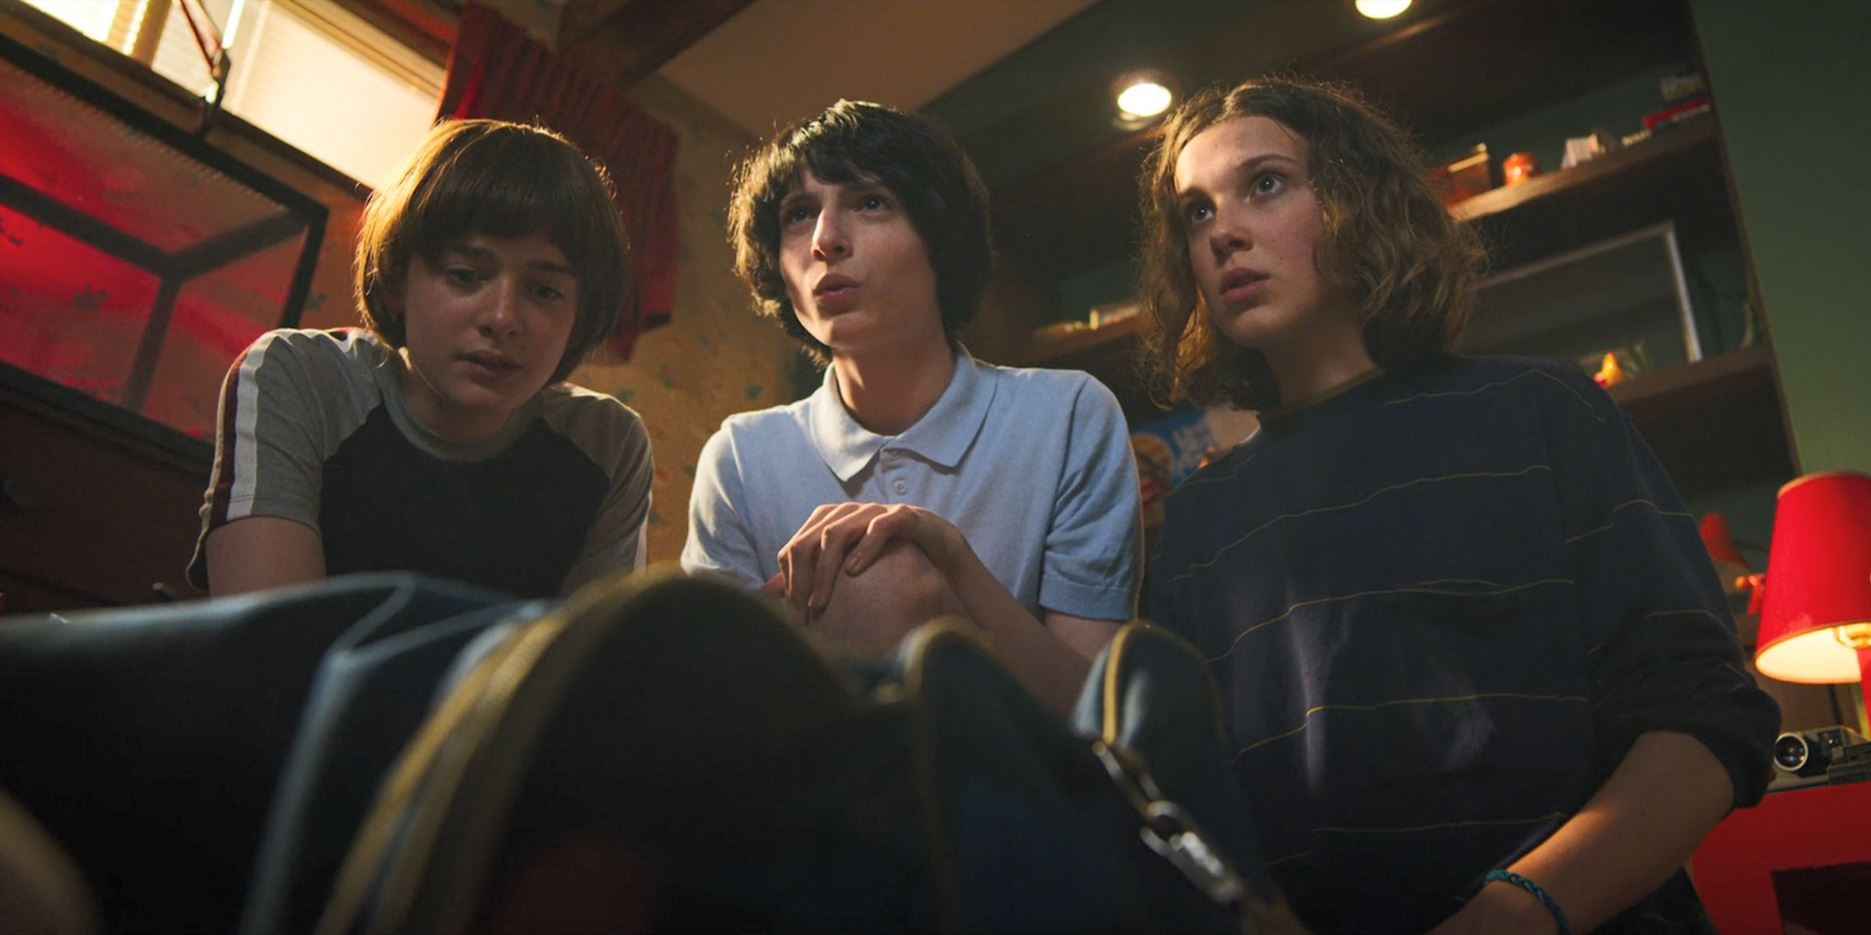 Stranger Things Season 3 Review - Will Mike and Eleven meet cerebro